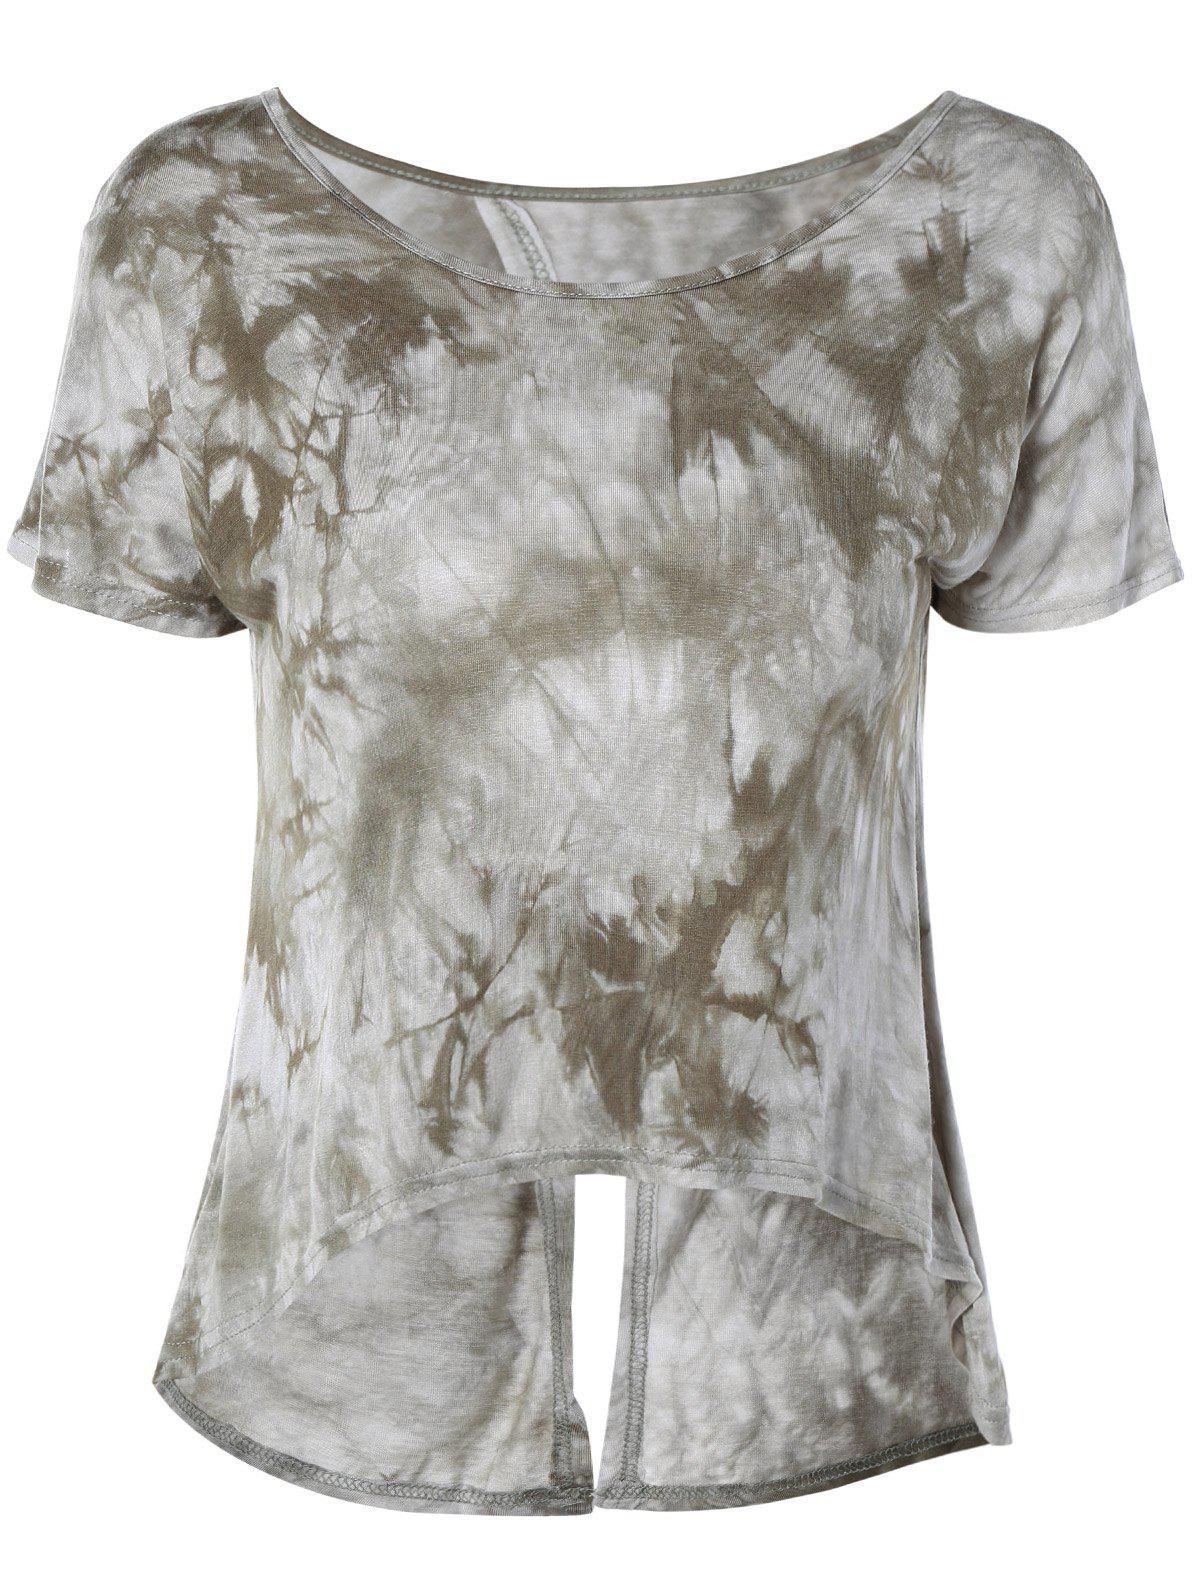 Stylish Women's Tie-Dyed Scoop Neck Short Sleeves Top